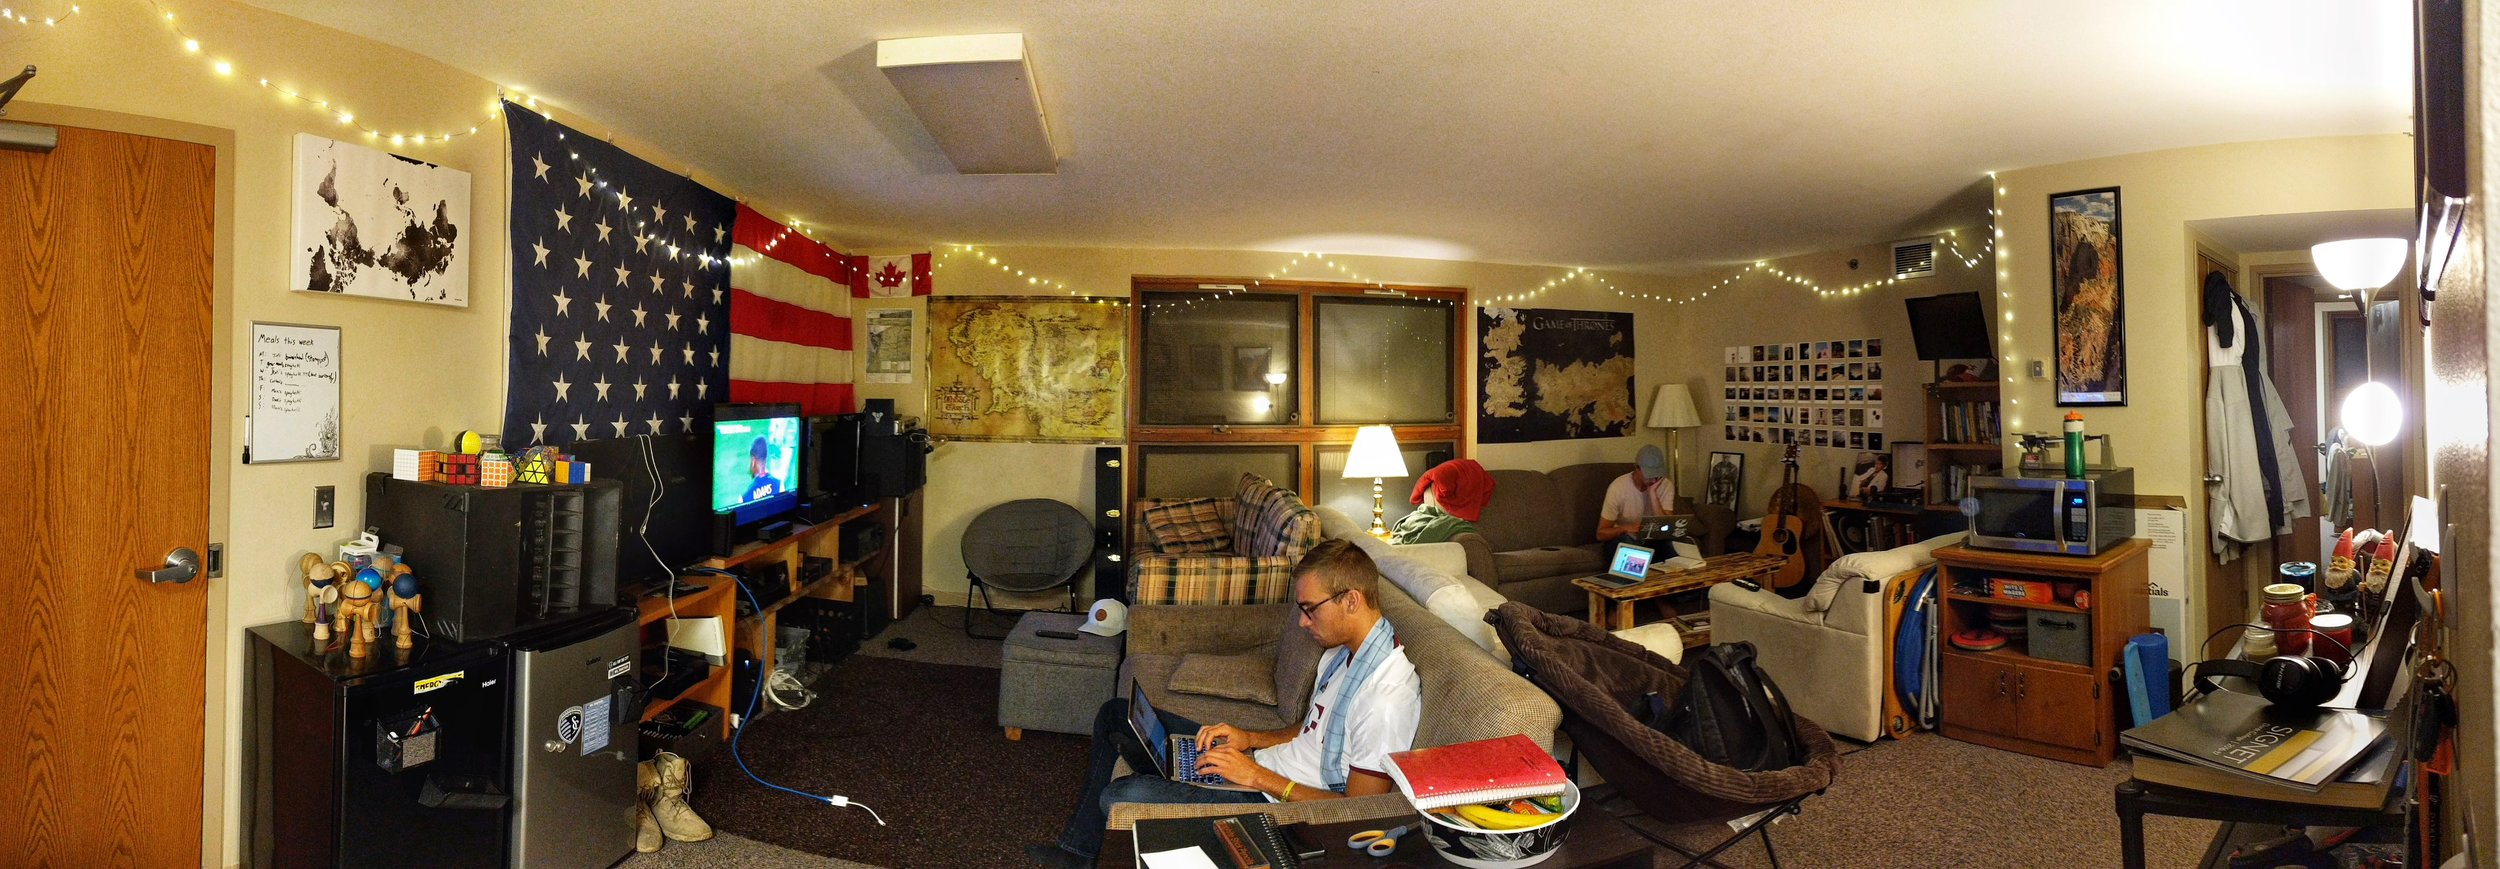 An inside look on my apartment. Pictured (left) is Jake Brouwer, working studiously on his homework and (right) Jonathan Beltman typing up a paper. Feel free to stop by Southview 208 anytime. The door's always open.